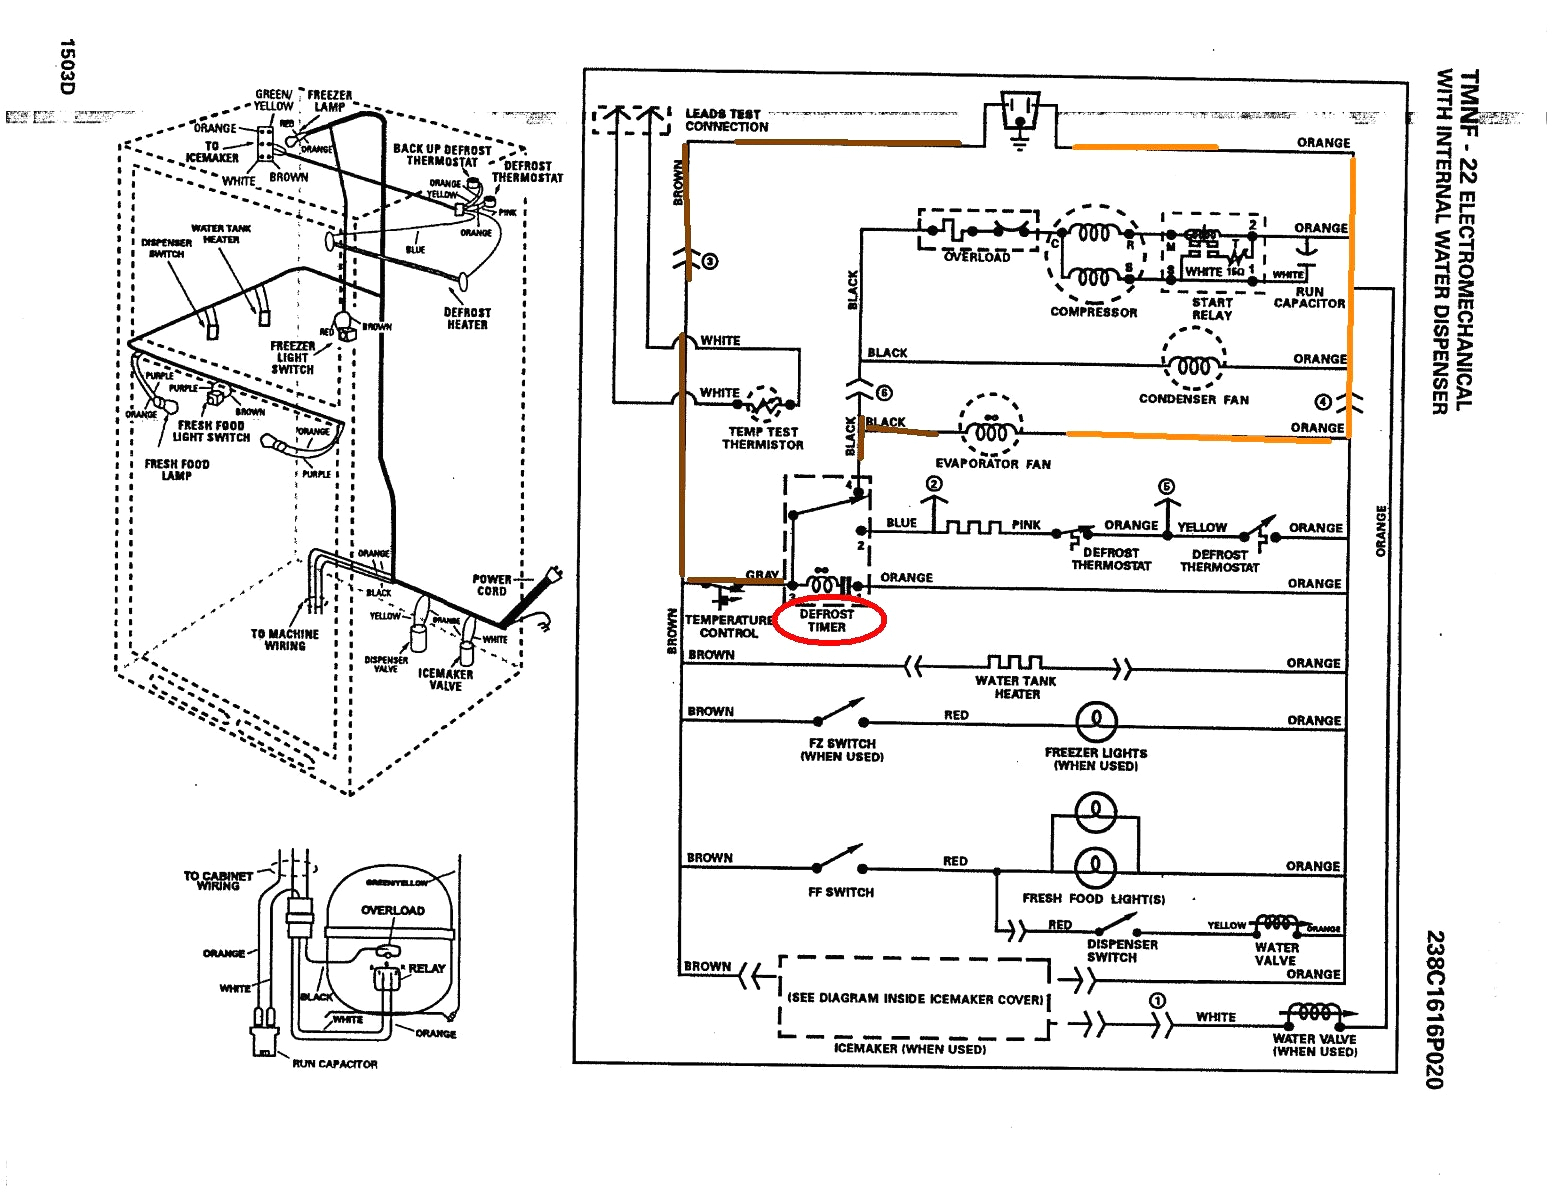 wiring diagram ge profile artica wiring diagram load ge profile arctica wiring diagram wiring diagram technic